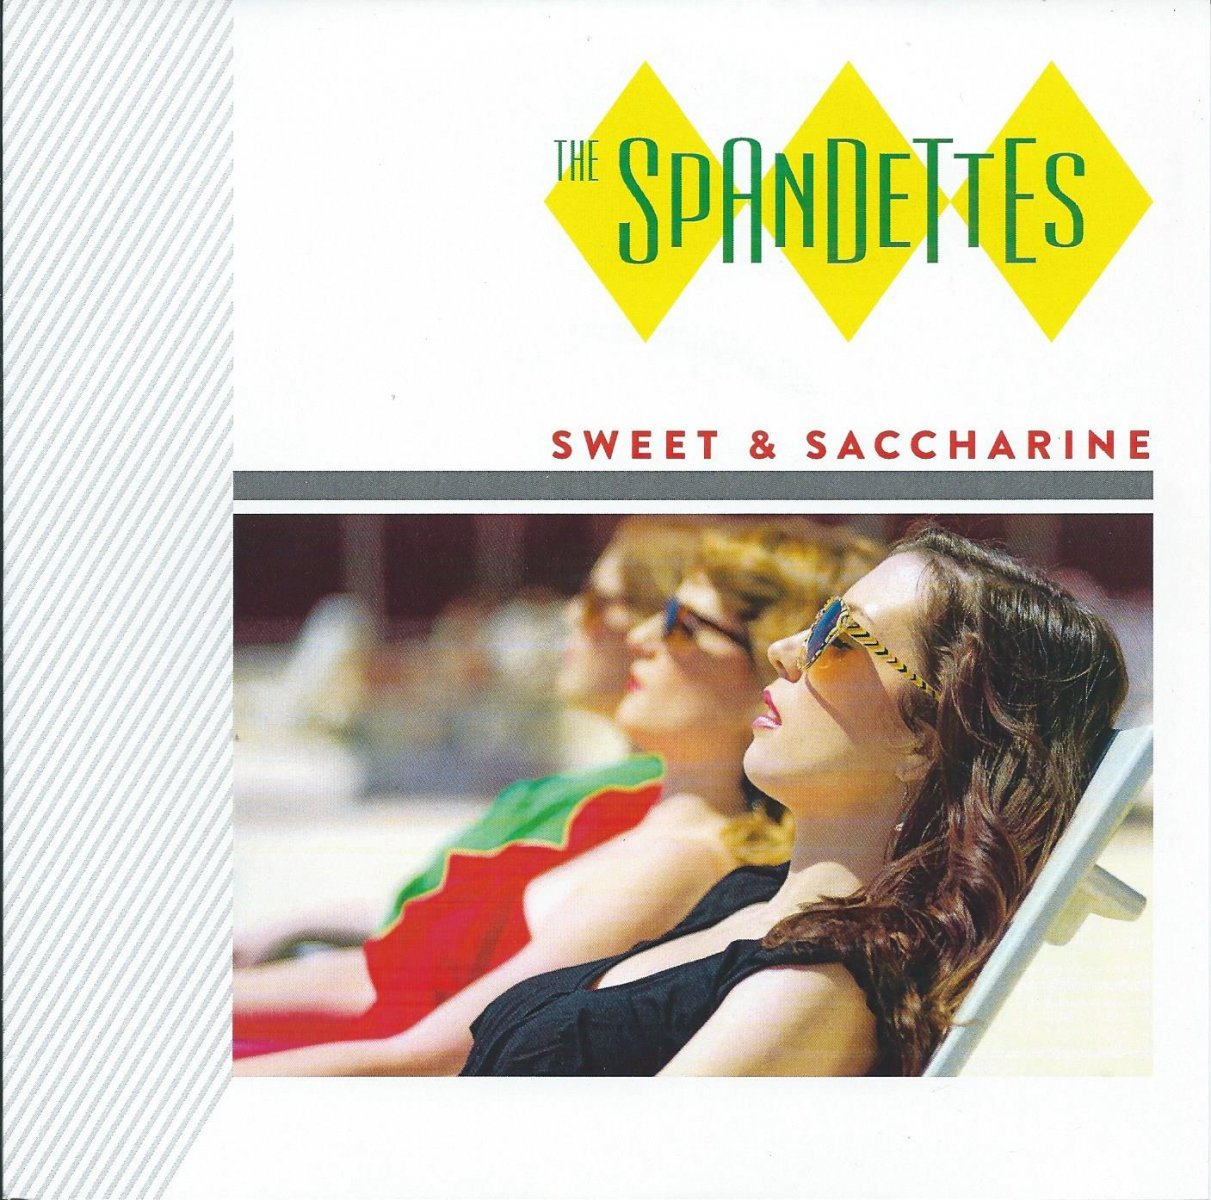 THE SPANDETTES ‎/ SWEET & SACCHARINE (7